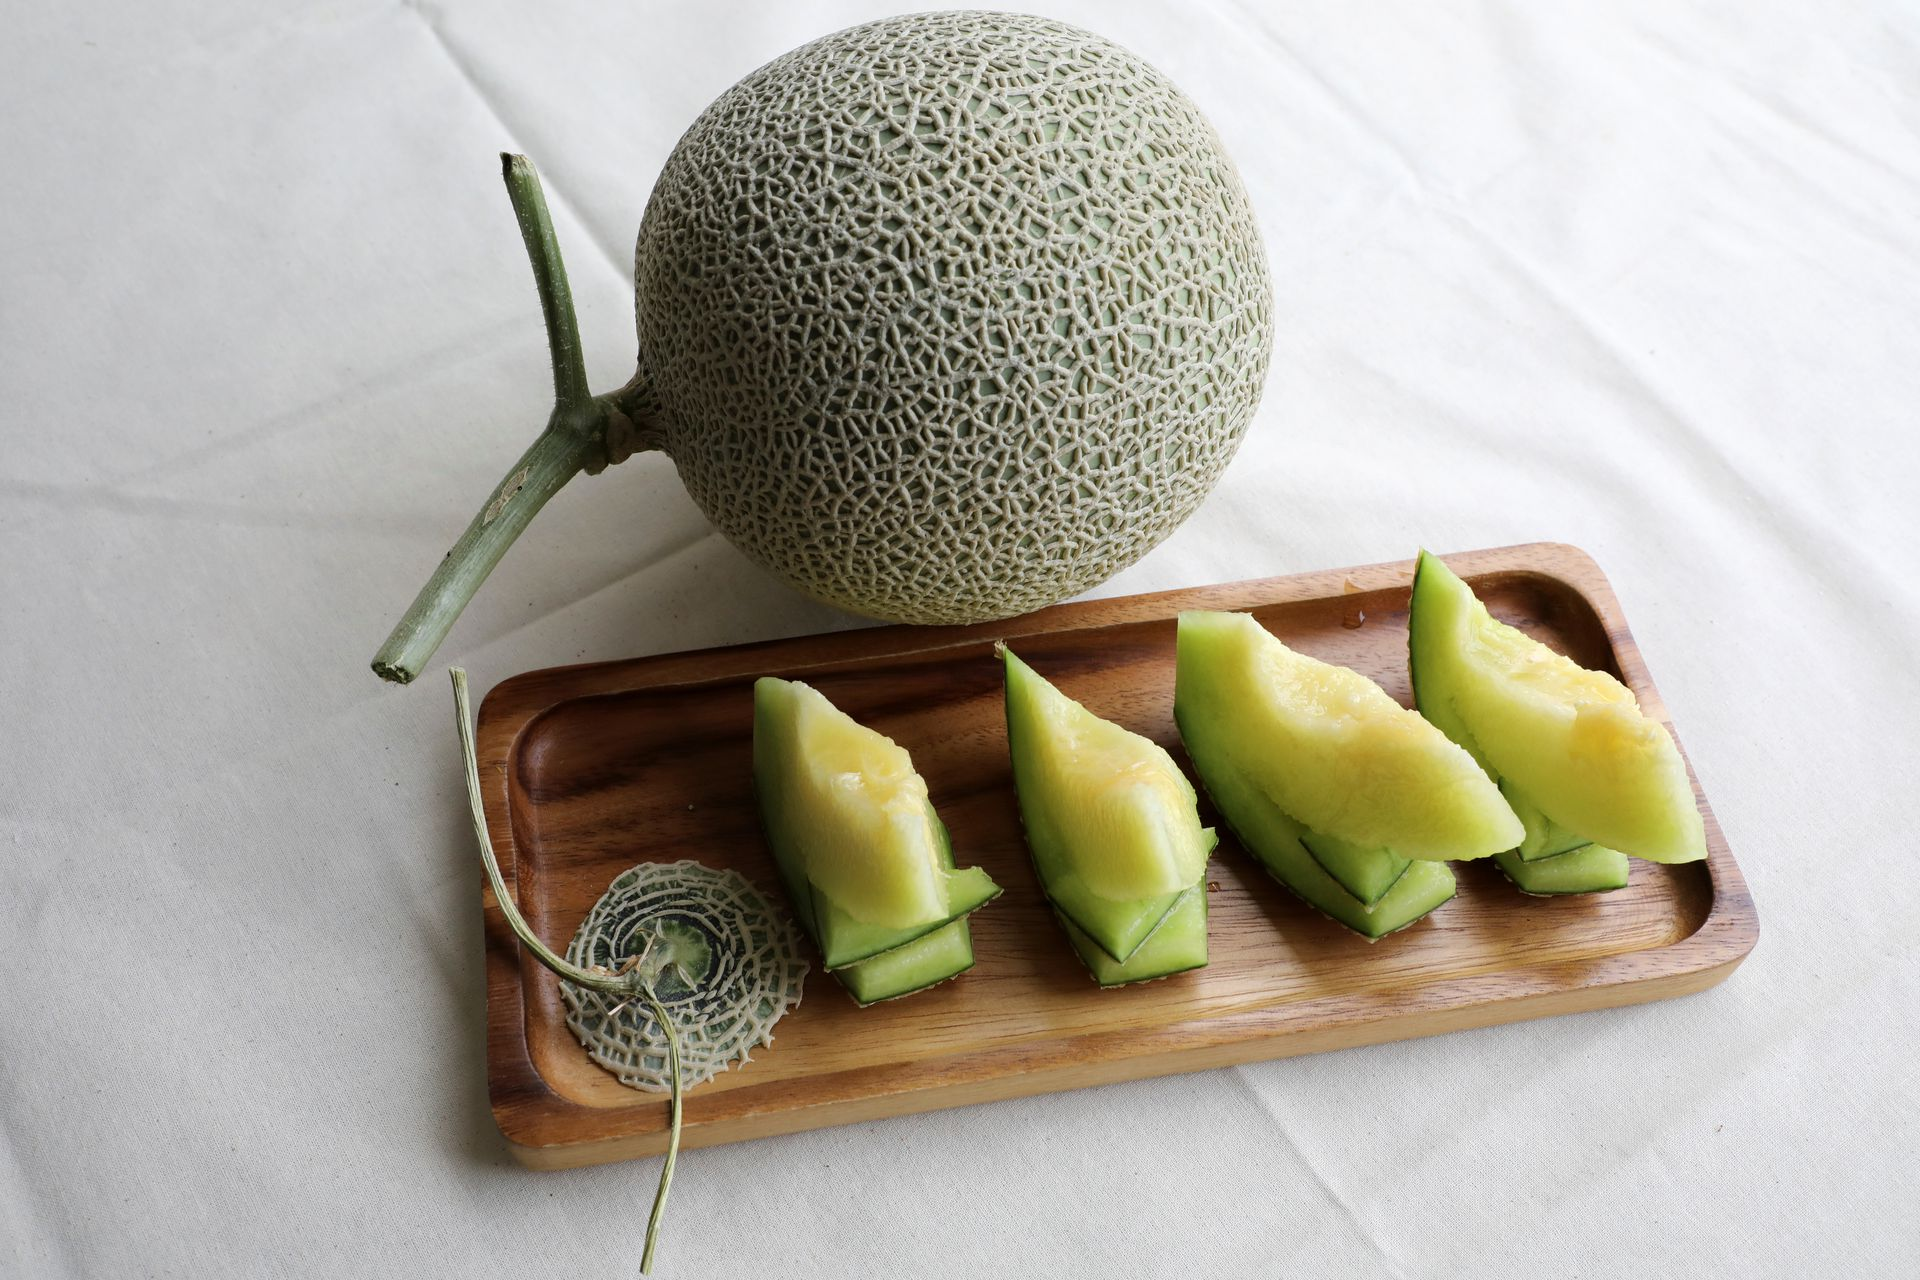 Japanese muskmelons are pictured at Mono Farm in Putrajaya, Malaysia April 8, 2021. Photo: Reuters